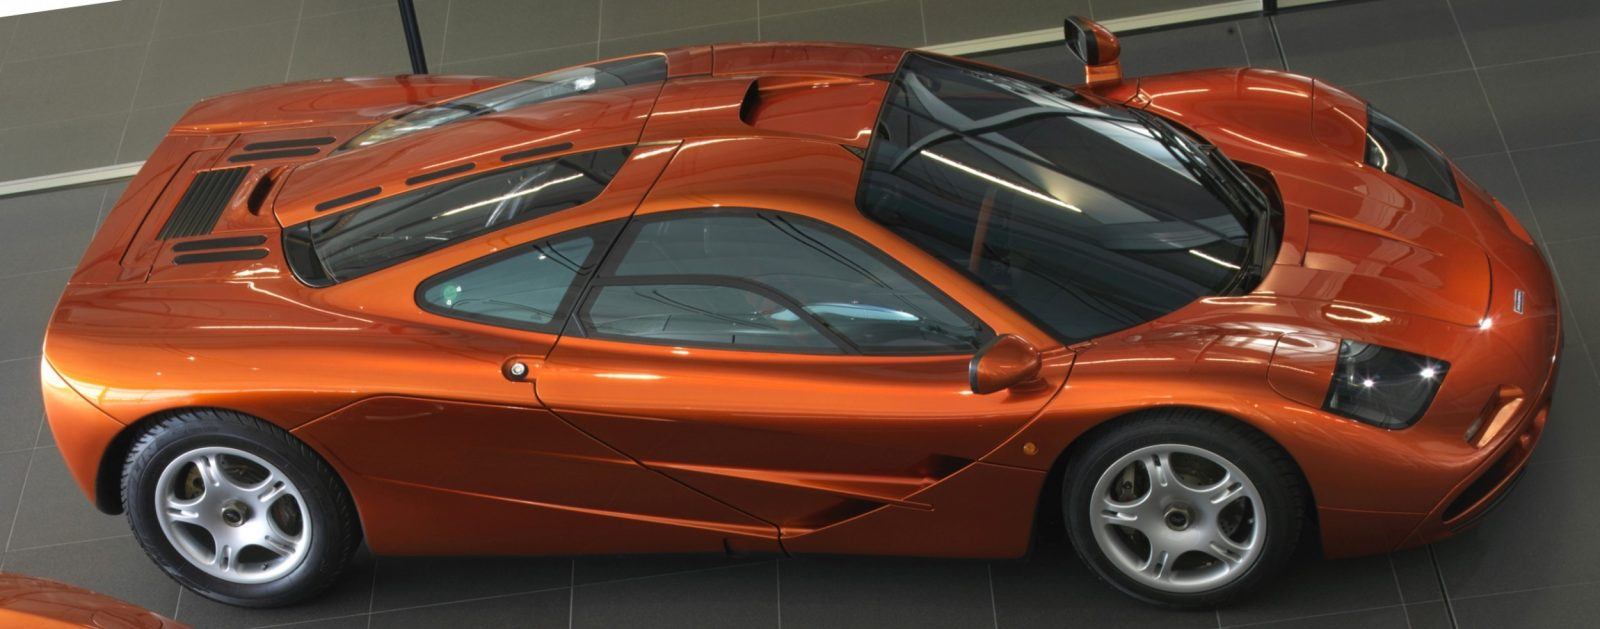 CarRevsDaily - Supercar Legends - McLaren F1 Wallpaper 43